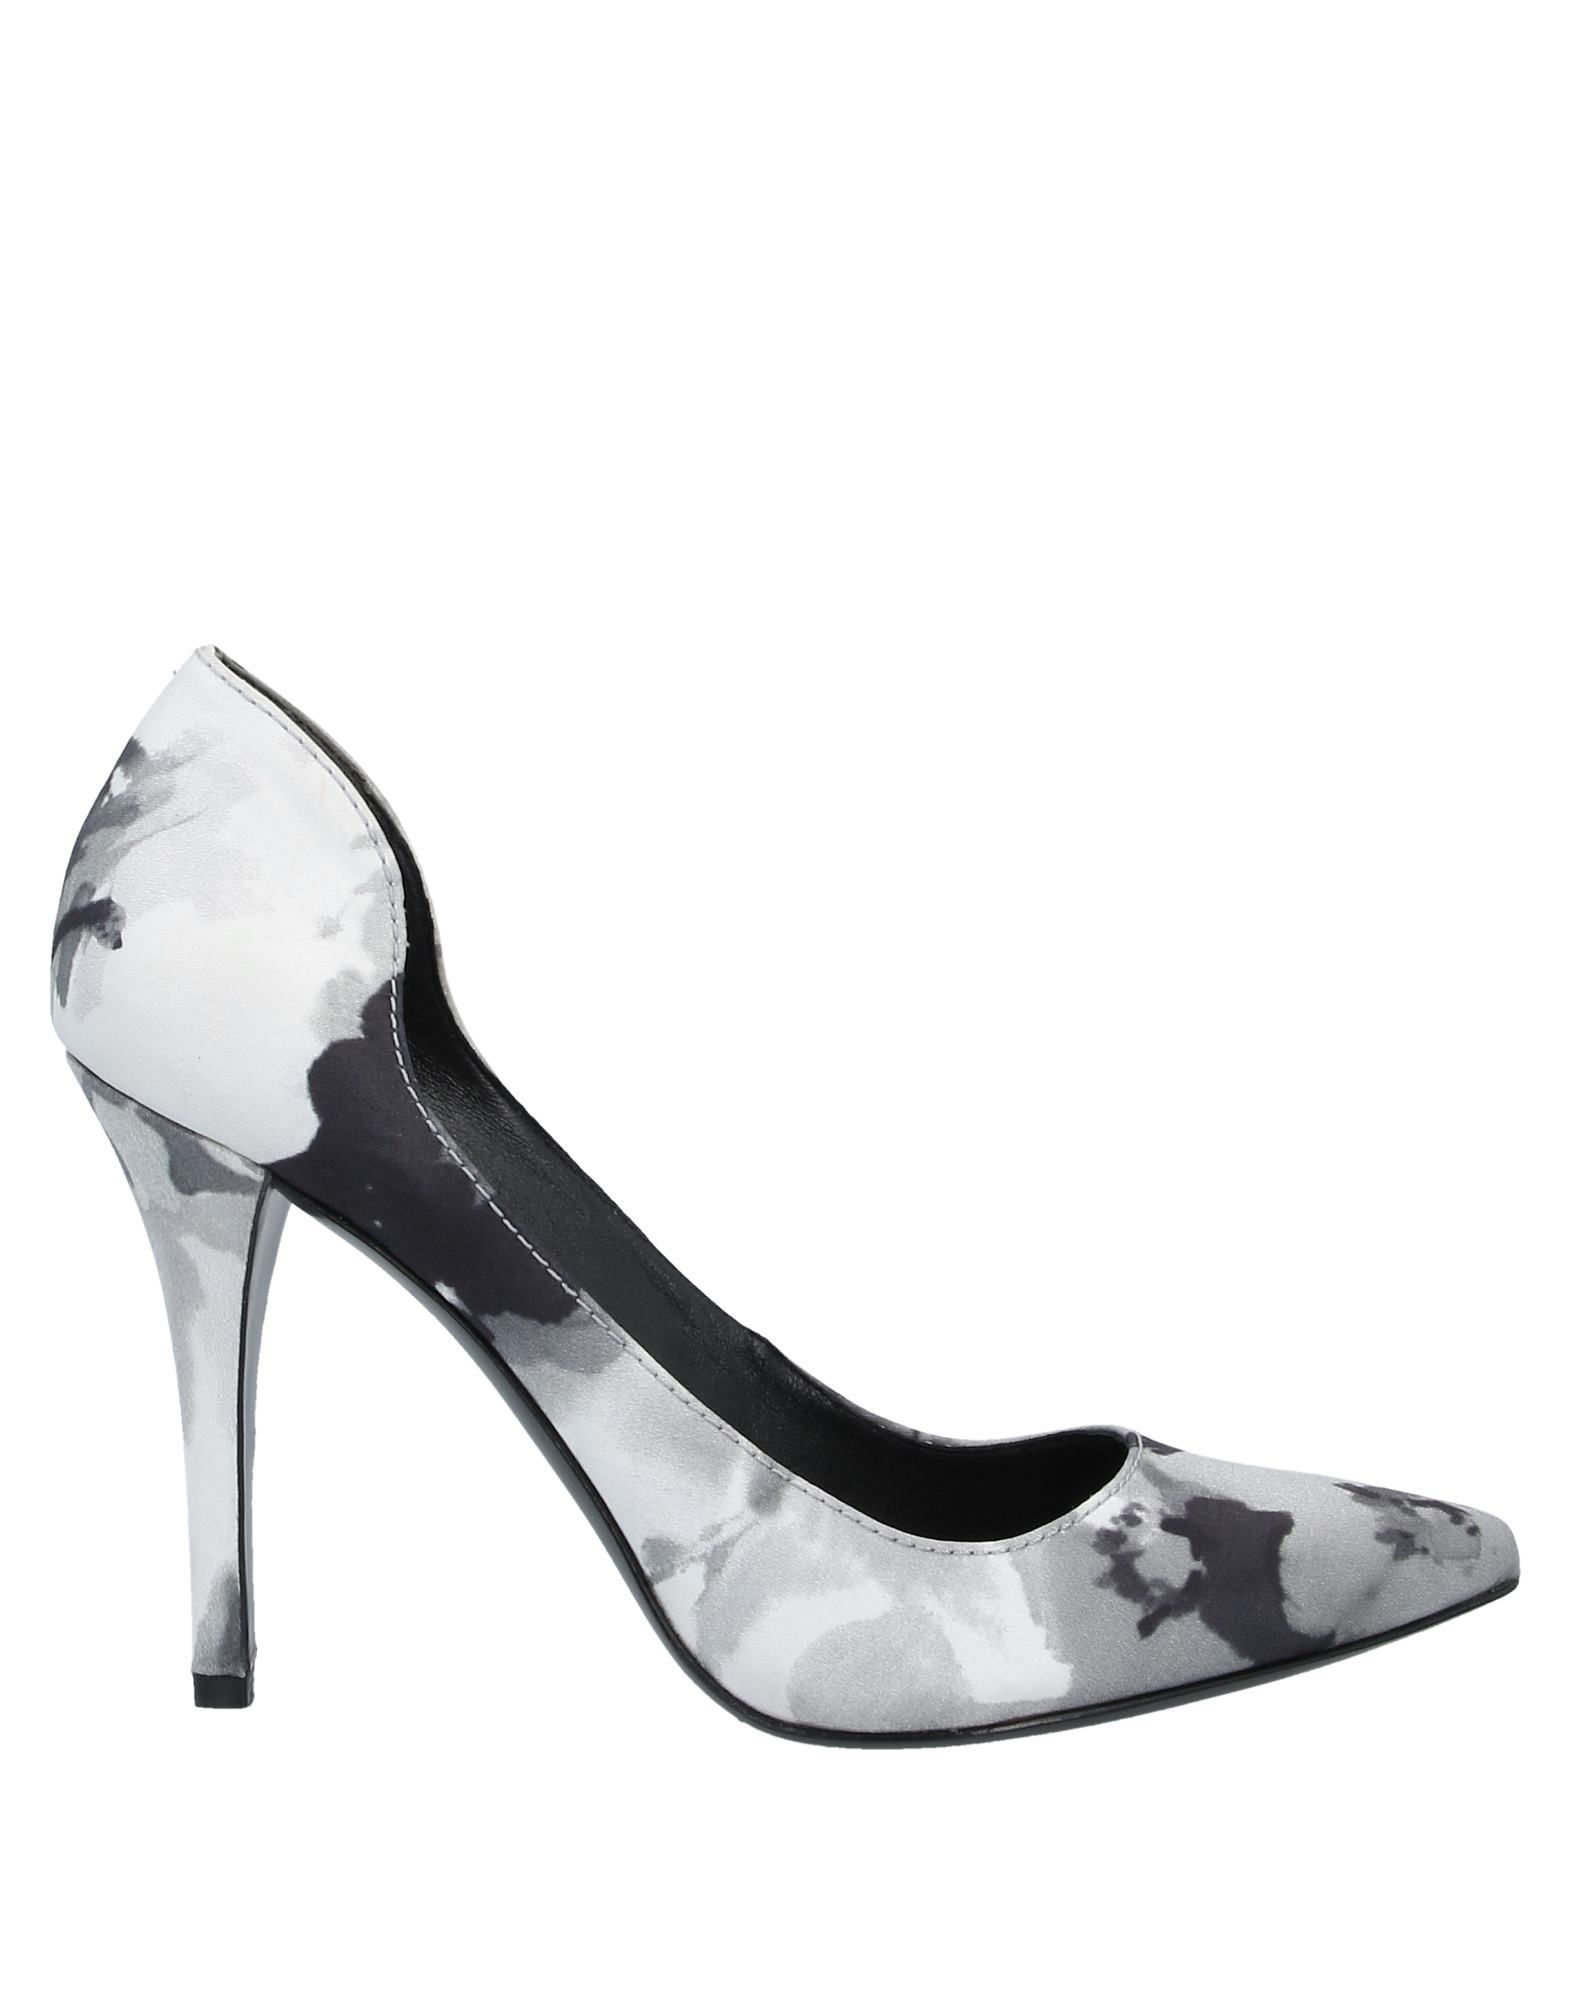 shop pierre balmain shoes